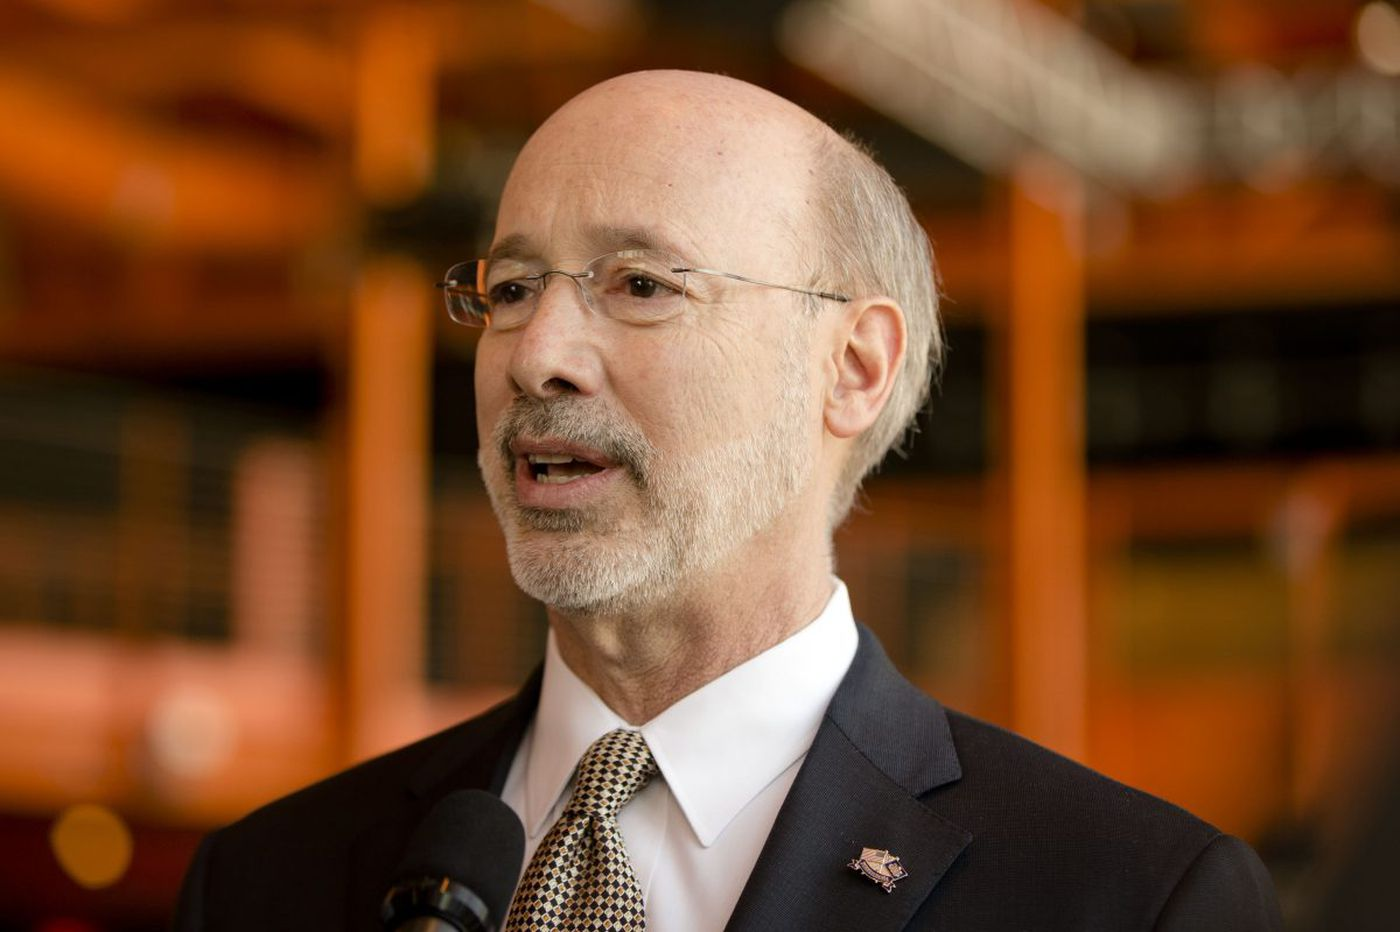 Why I will veto the anti-choice Senate Bill 3 | Gov. Tom Wolf